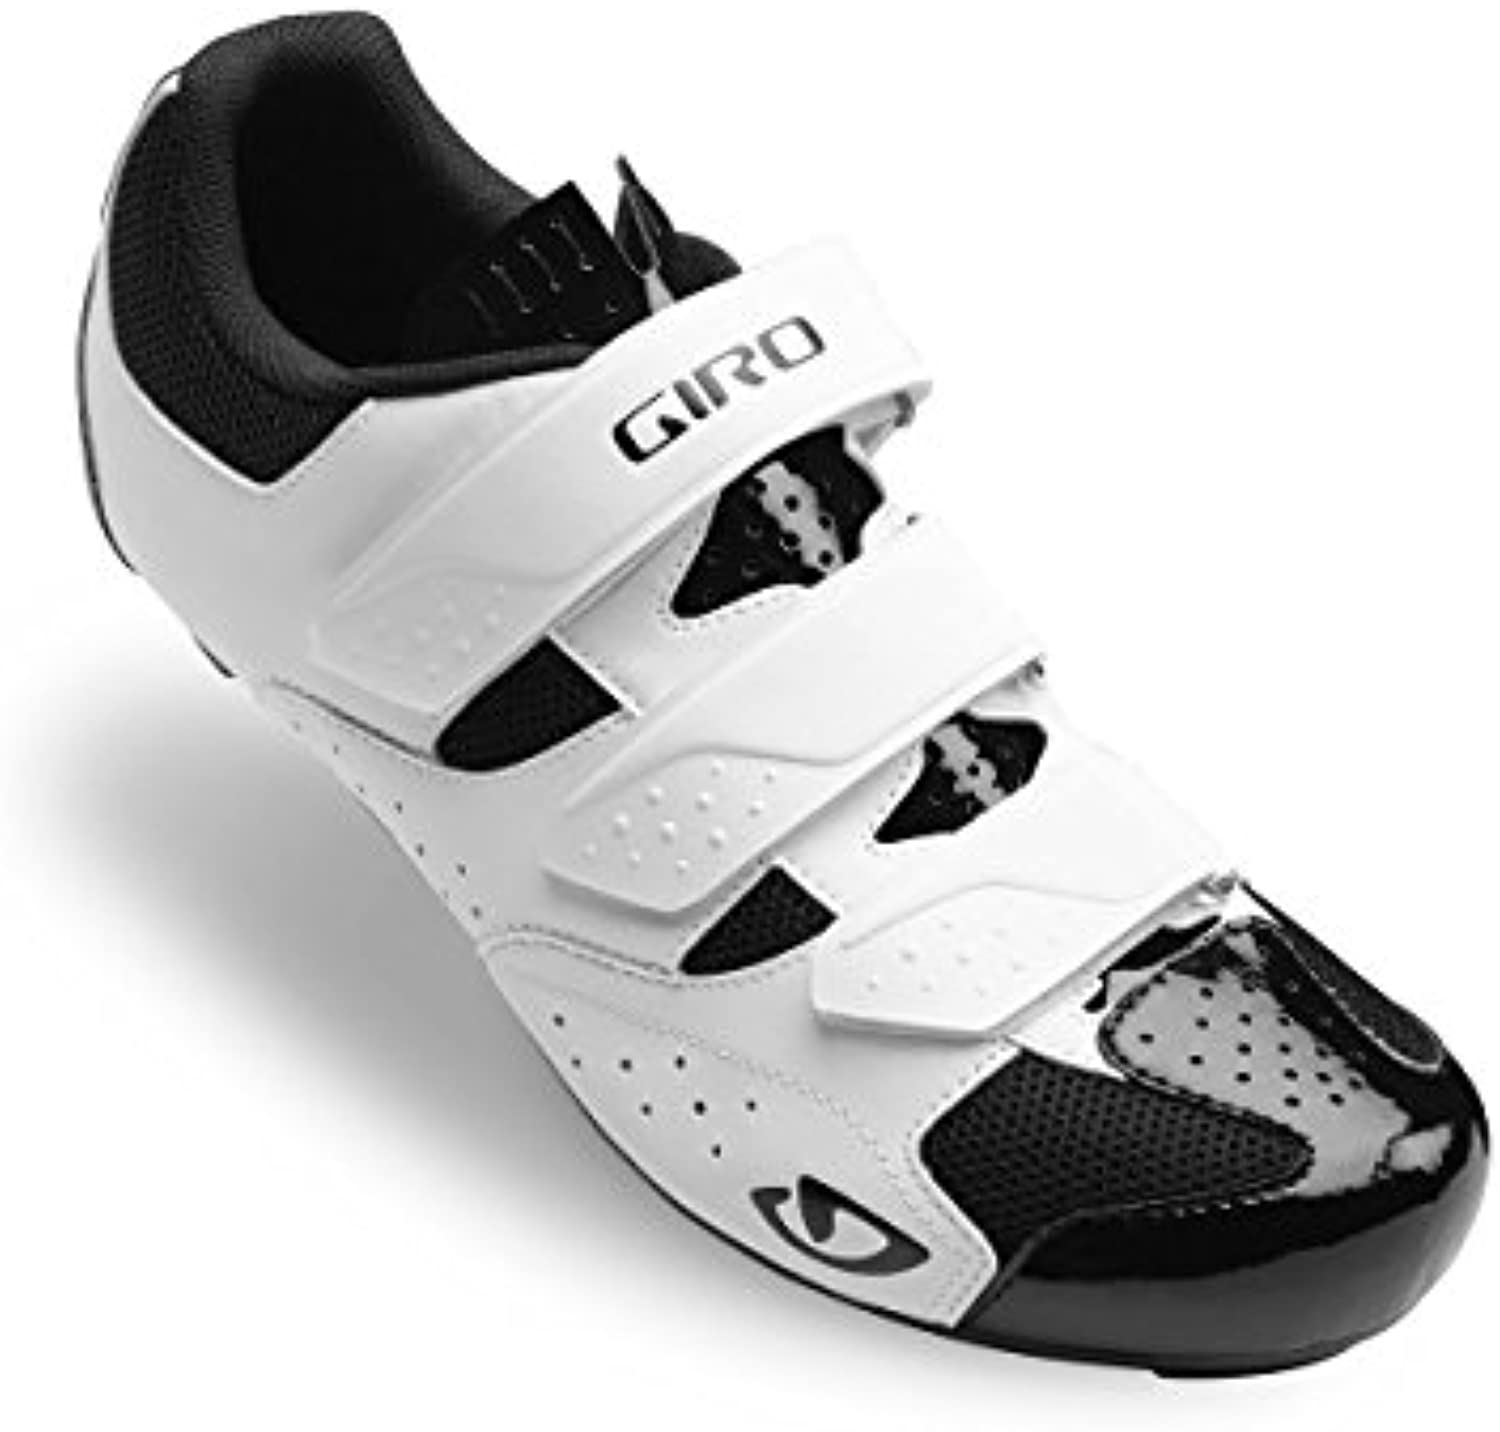 Giro Techne Road, Zapatos de Ciclismo de Carretera para Hombre, Multicolor (White/Black 000), 44.5 EU  -